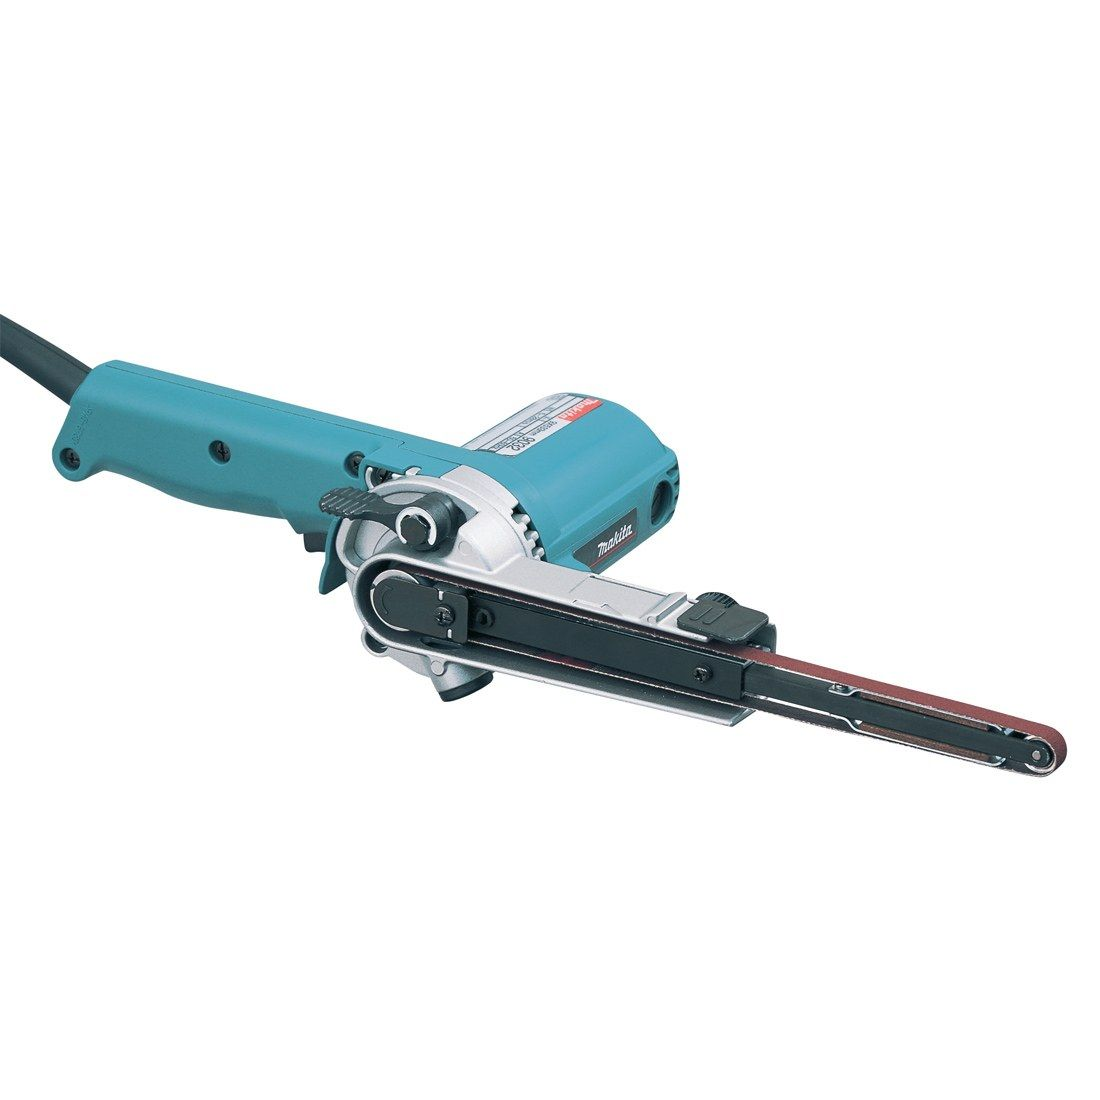 Makita 9032 Filing Belt Sander 240v MAK9032 | The Makita 9032 9mm power-file sander enables you to file and sand in awkward and confined areas | toolforce.ie